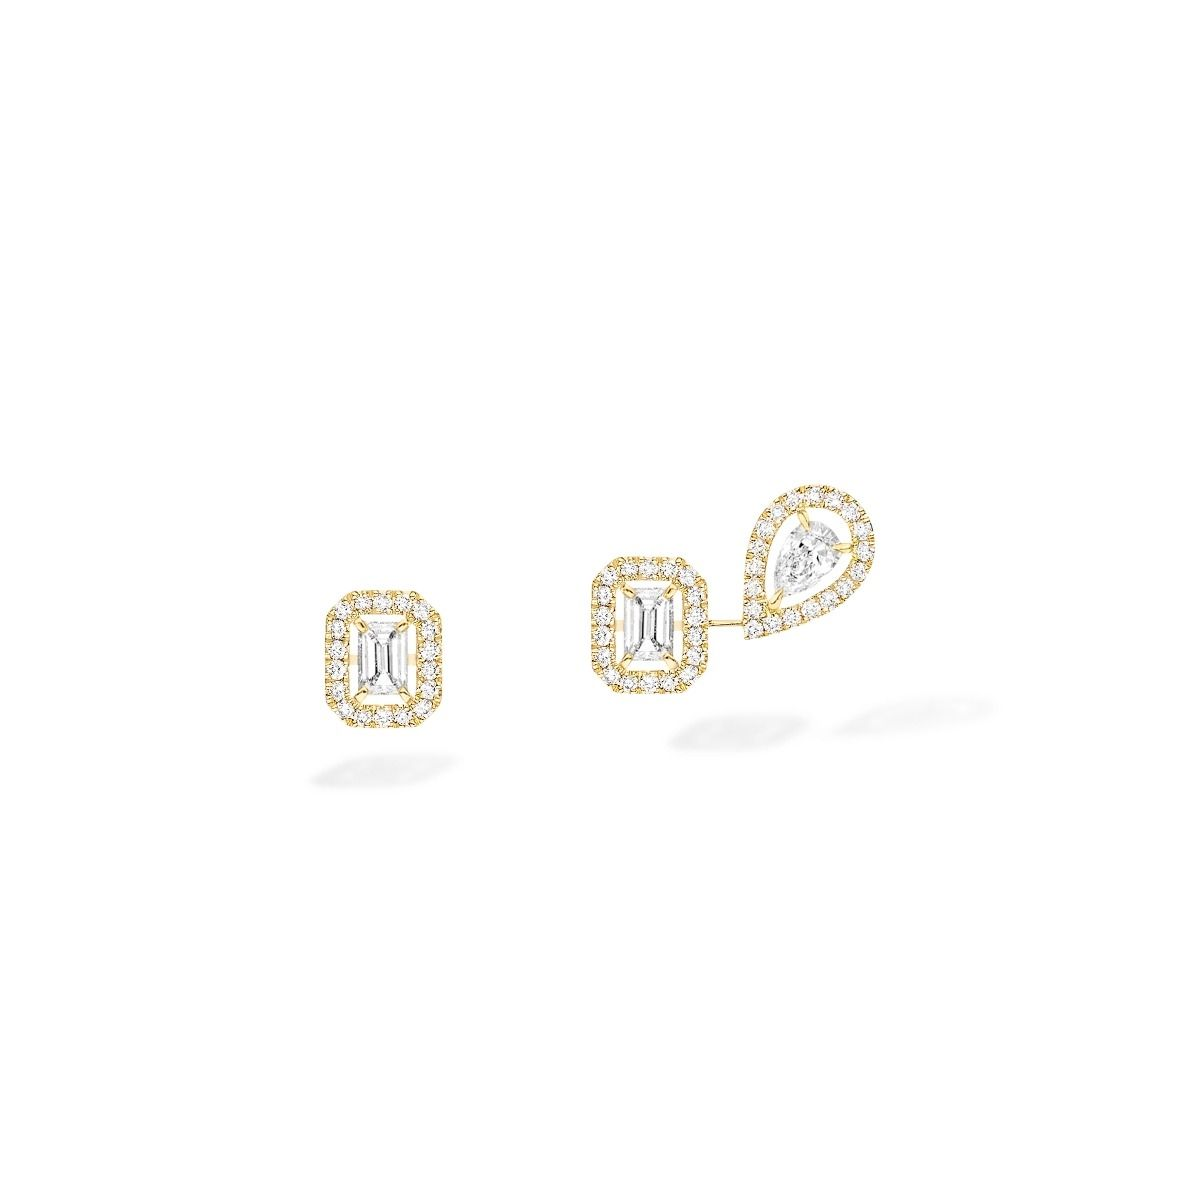 Boucles d'oreilles Messika My Twin 1+2 en or jaune et diamants